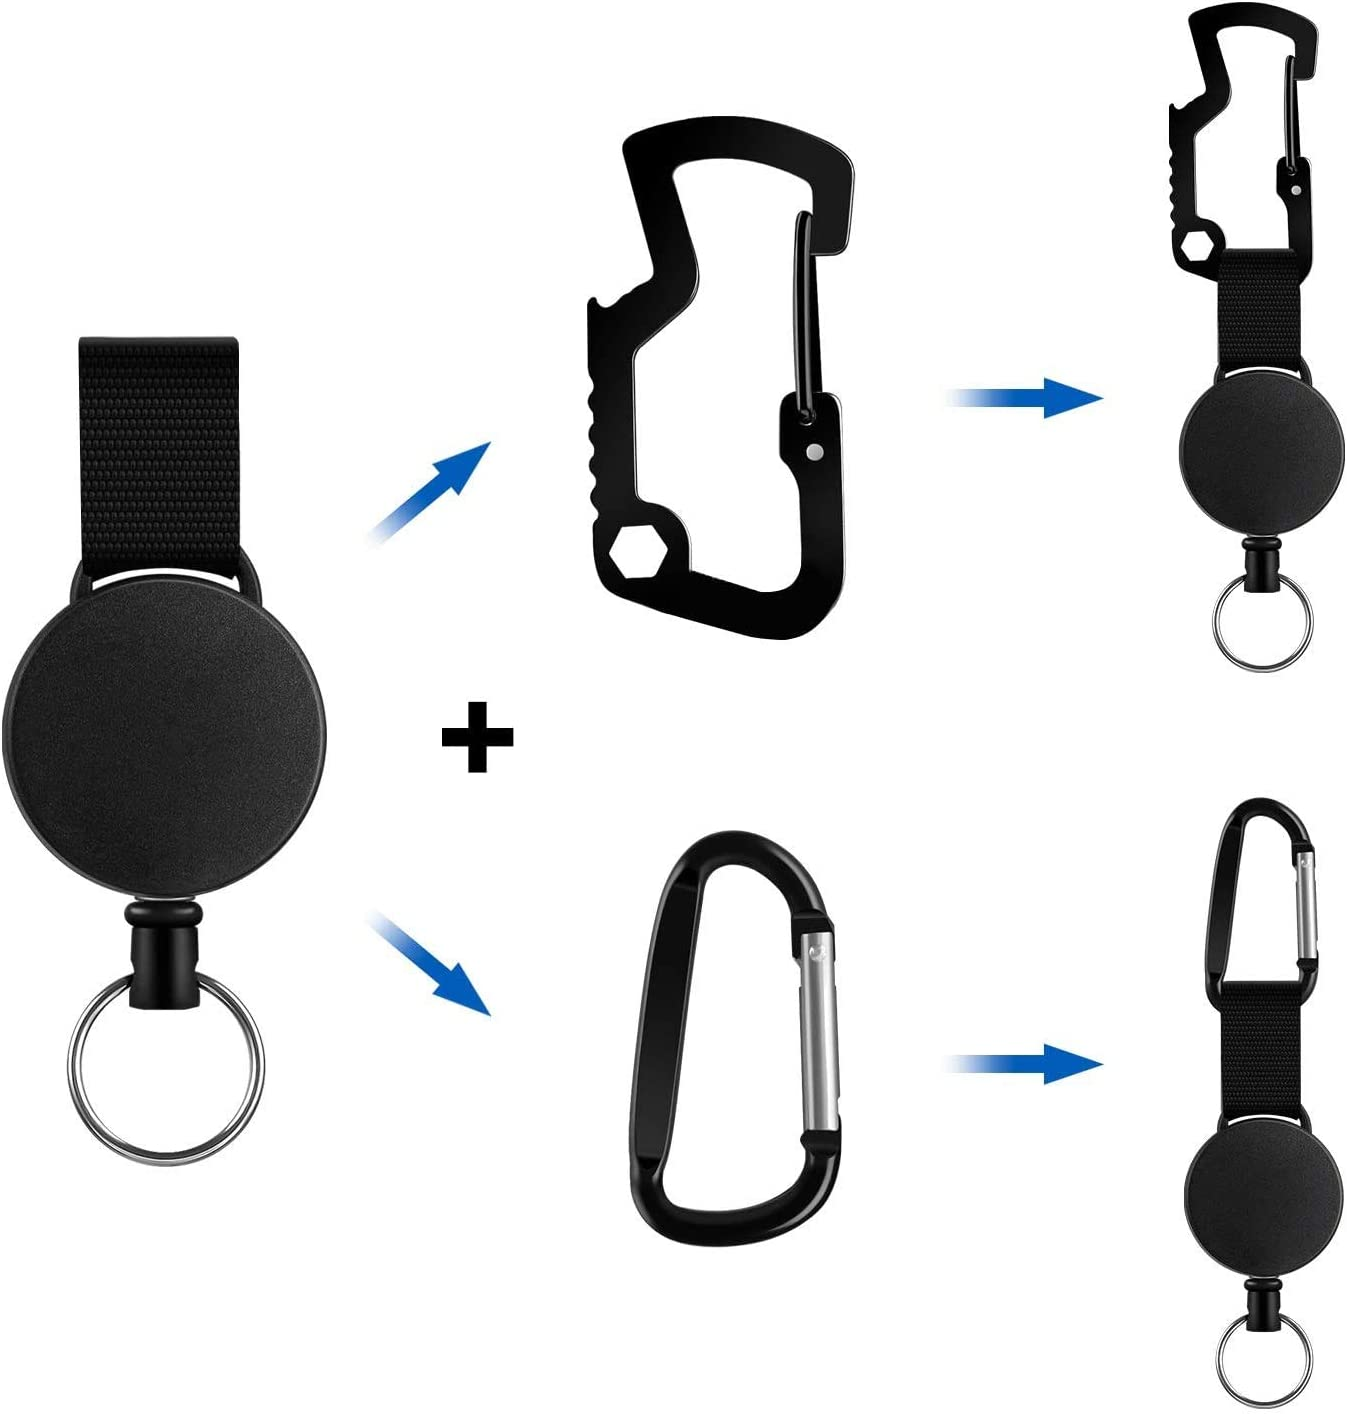 Porte Badge Enrouleur Retractable,R/étractable Robuste R/étractable Porte-cl/és,Badge Retractable,Retractable Key Chain,Clip Porte Badge,Bobine R/étractable